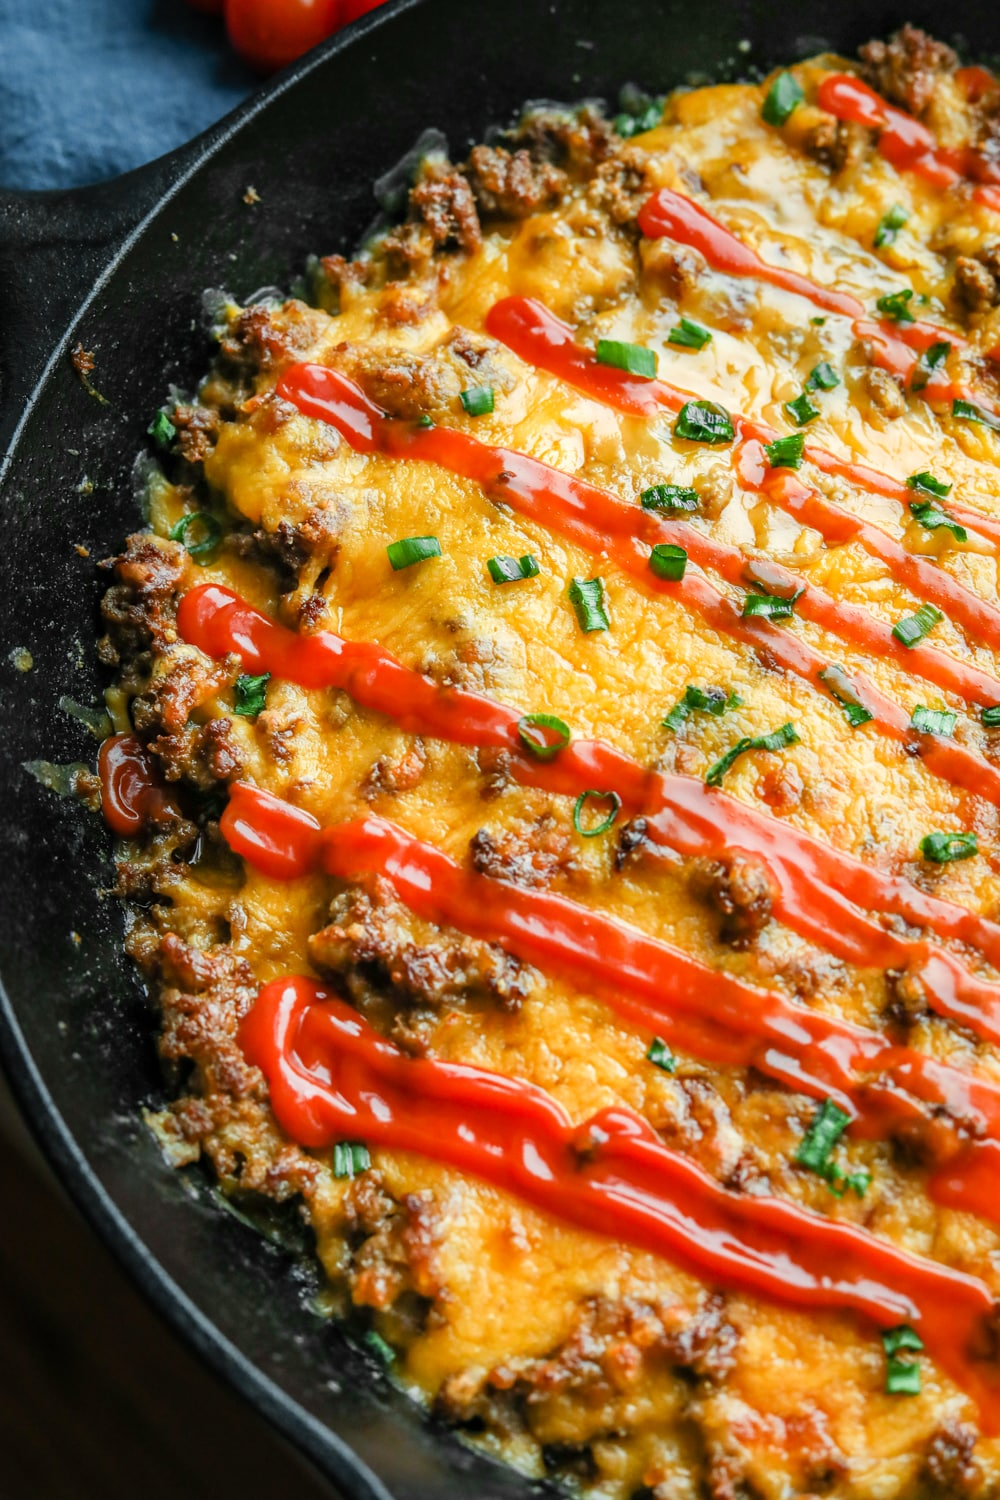 Half of a cheeseburger casserole in a cast iron pan topped with chives and keto ketchup.